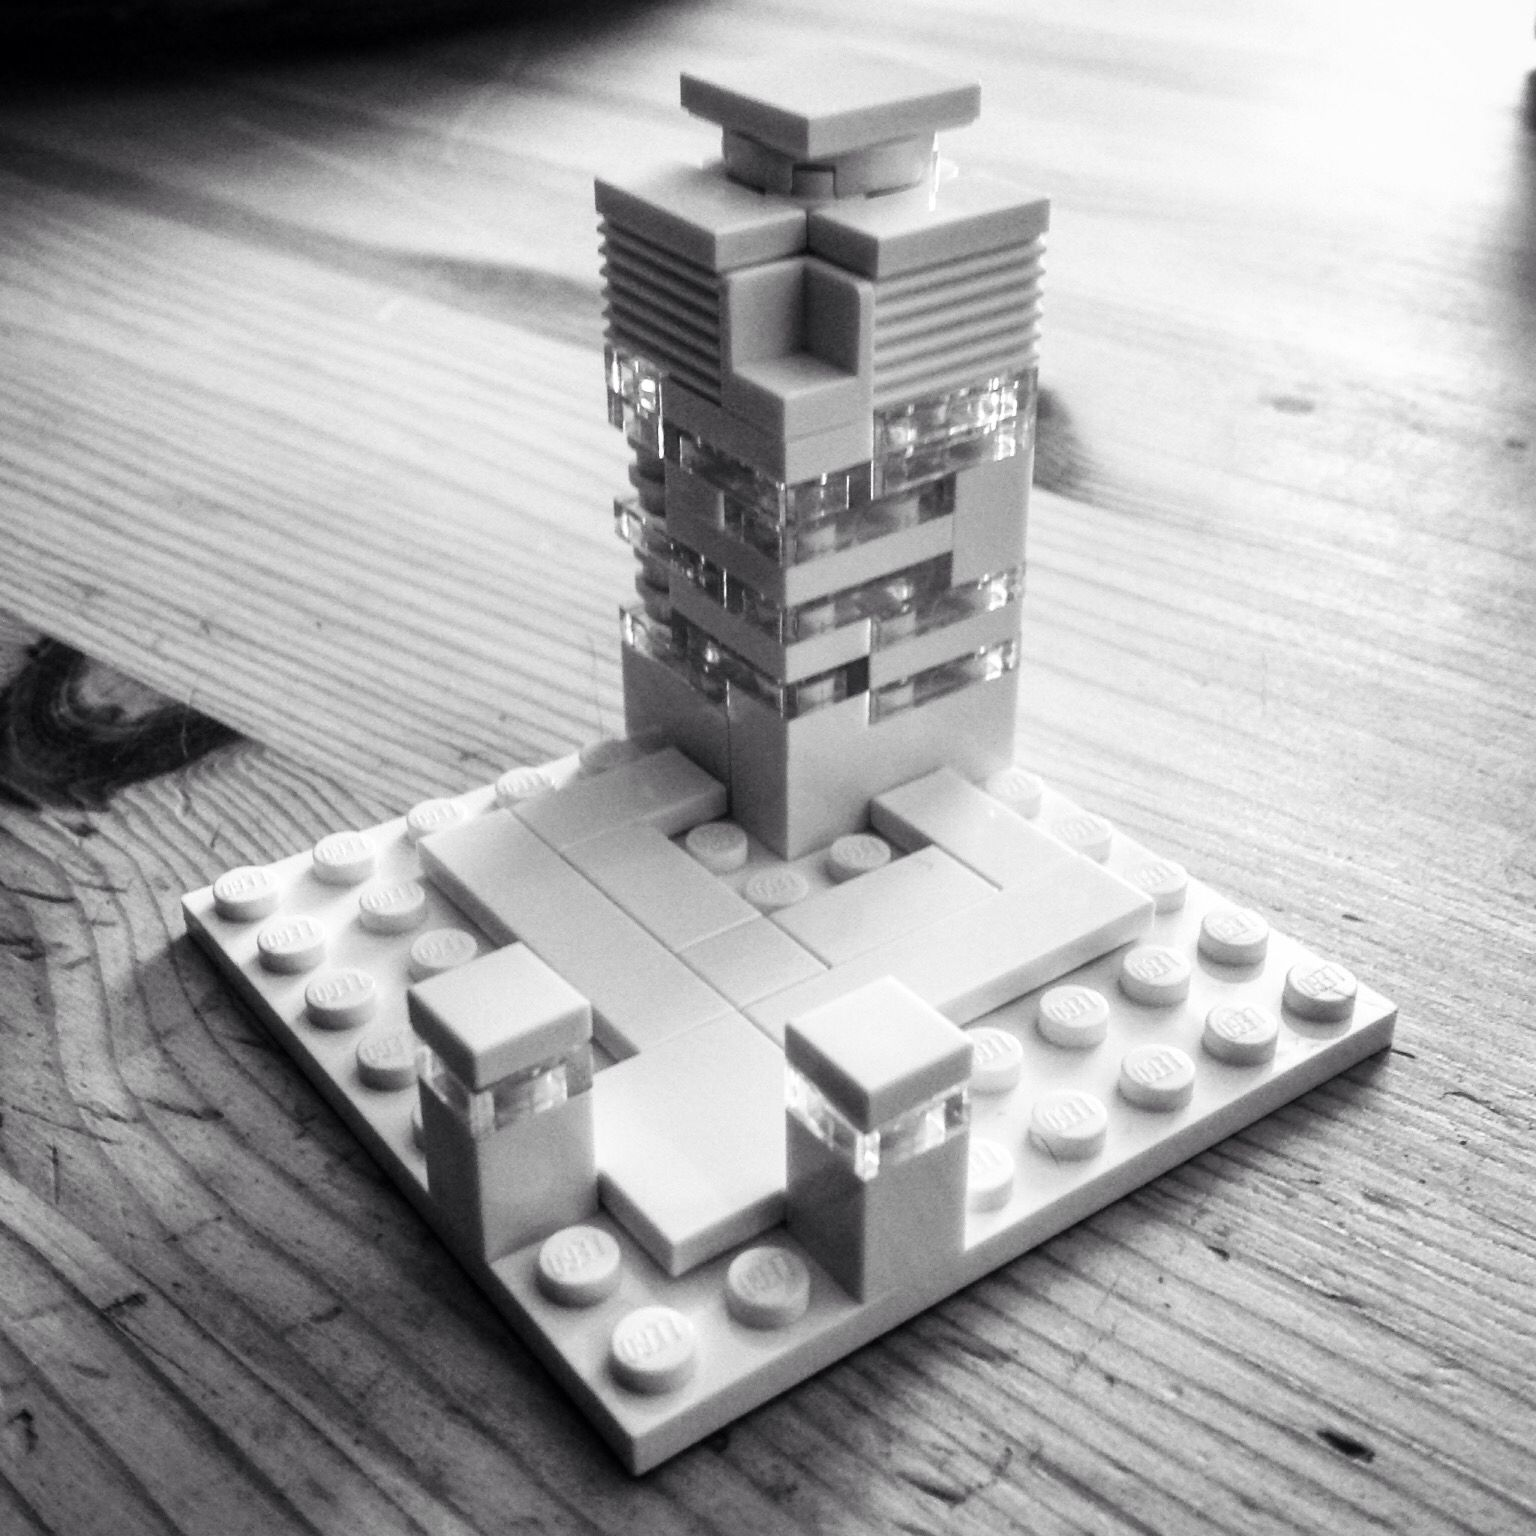 Modern Architecture Lego lego architecture studio creation (my 13 yr old son's first design